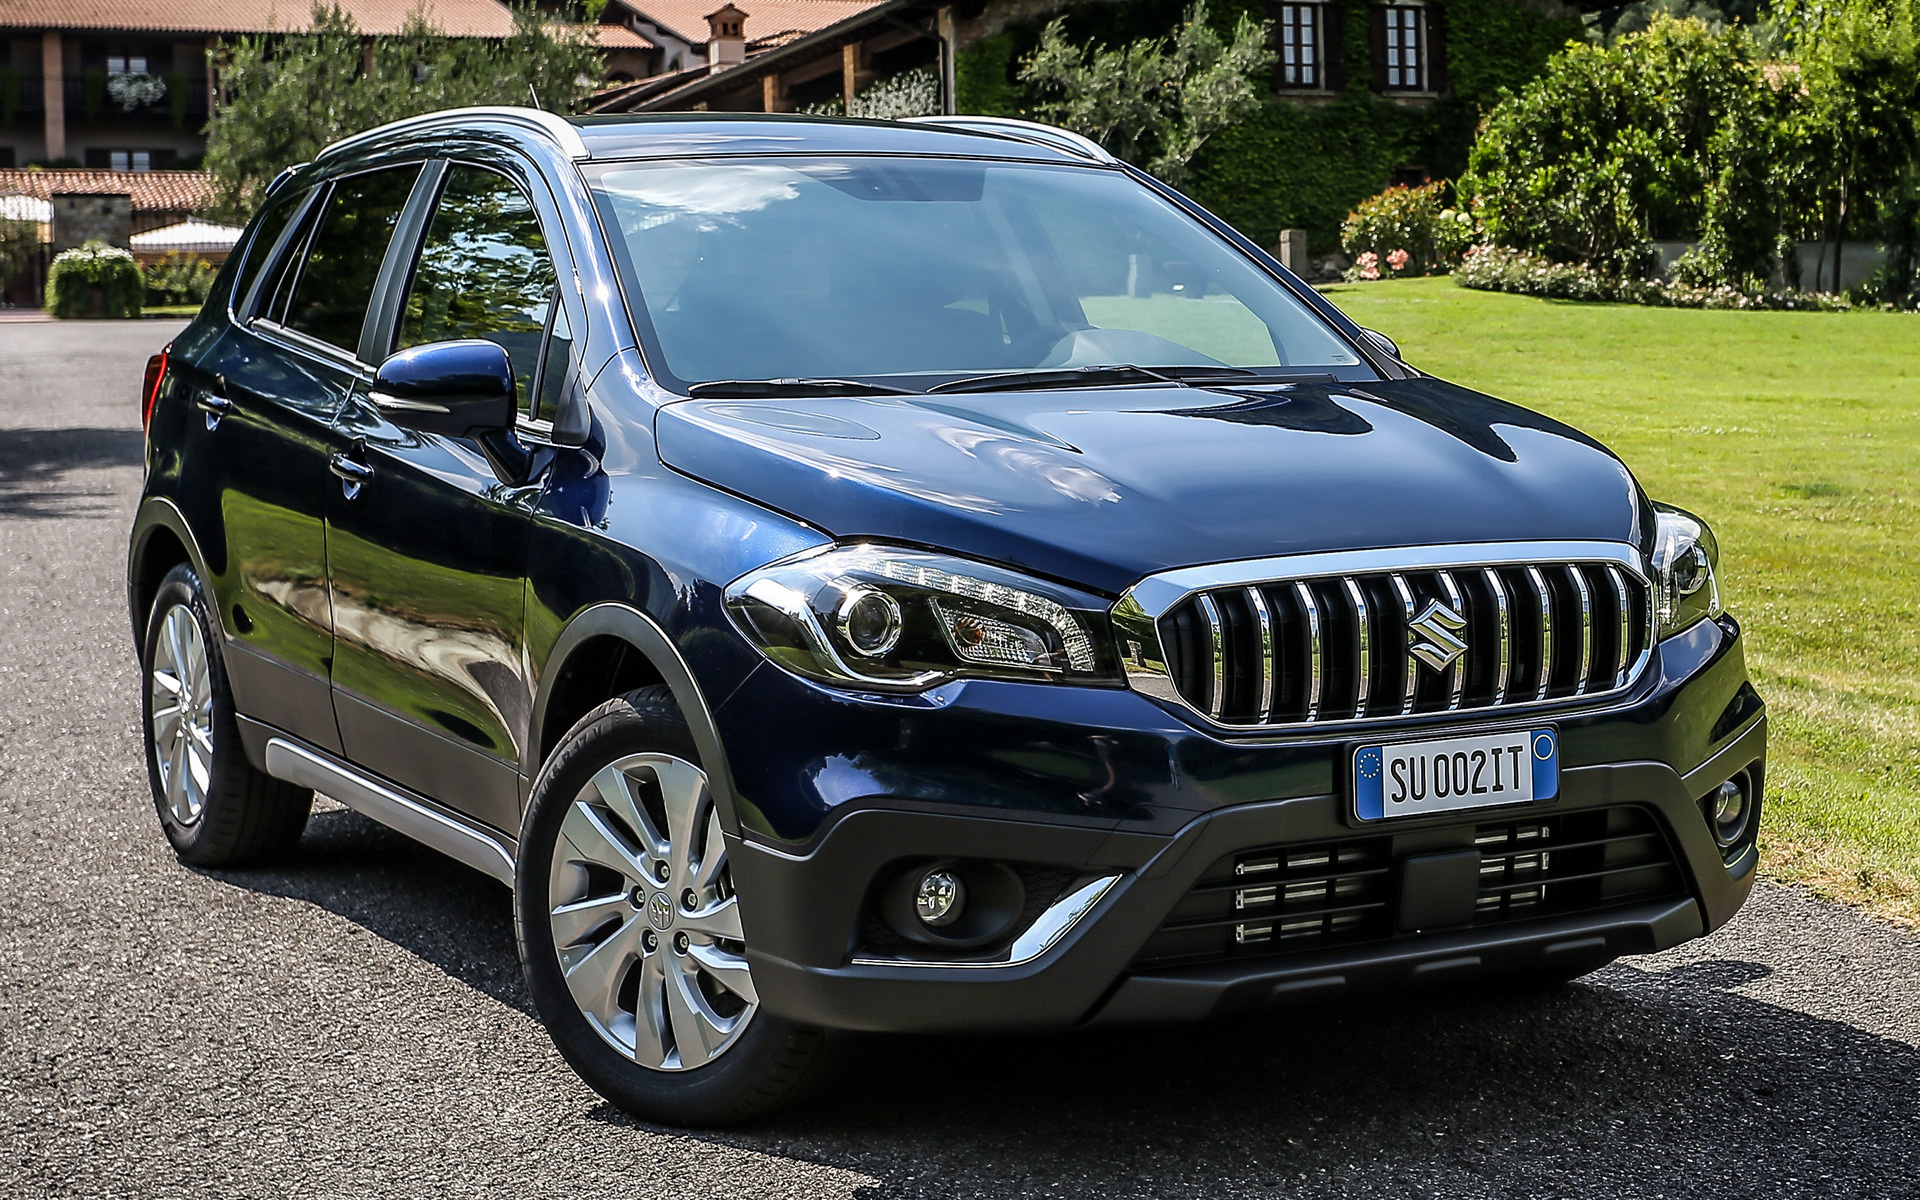 suzuki sx4 s cross 2016 wallpapers and hd images car pixel. Black Bedroom Furniture Sets. Home Design Ideas